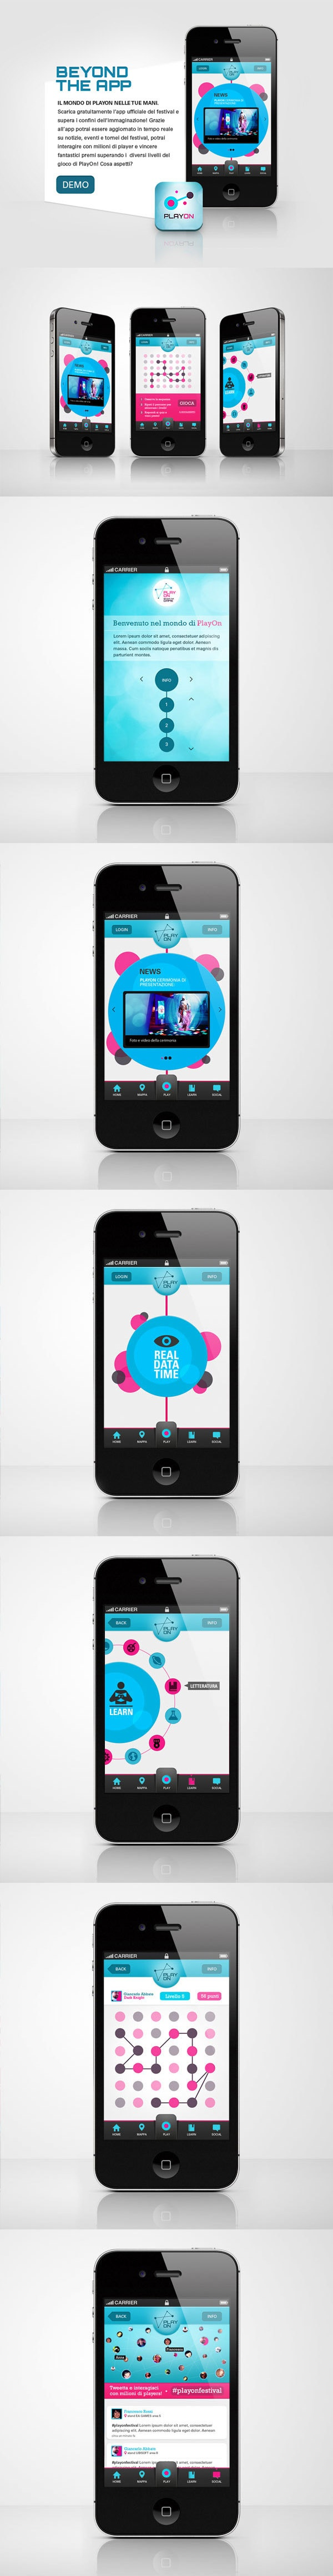 Play On - Beyond the Game | #App by Margherita Fortuna, via #Behance #Mobile